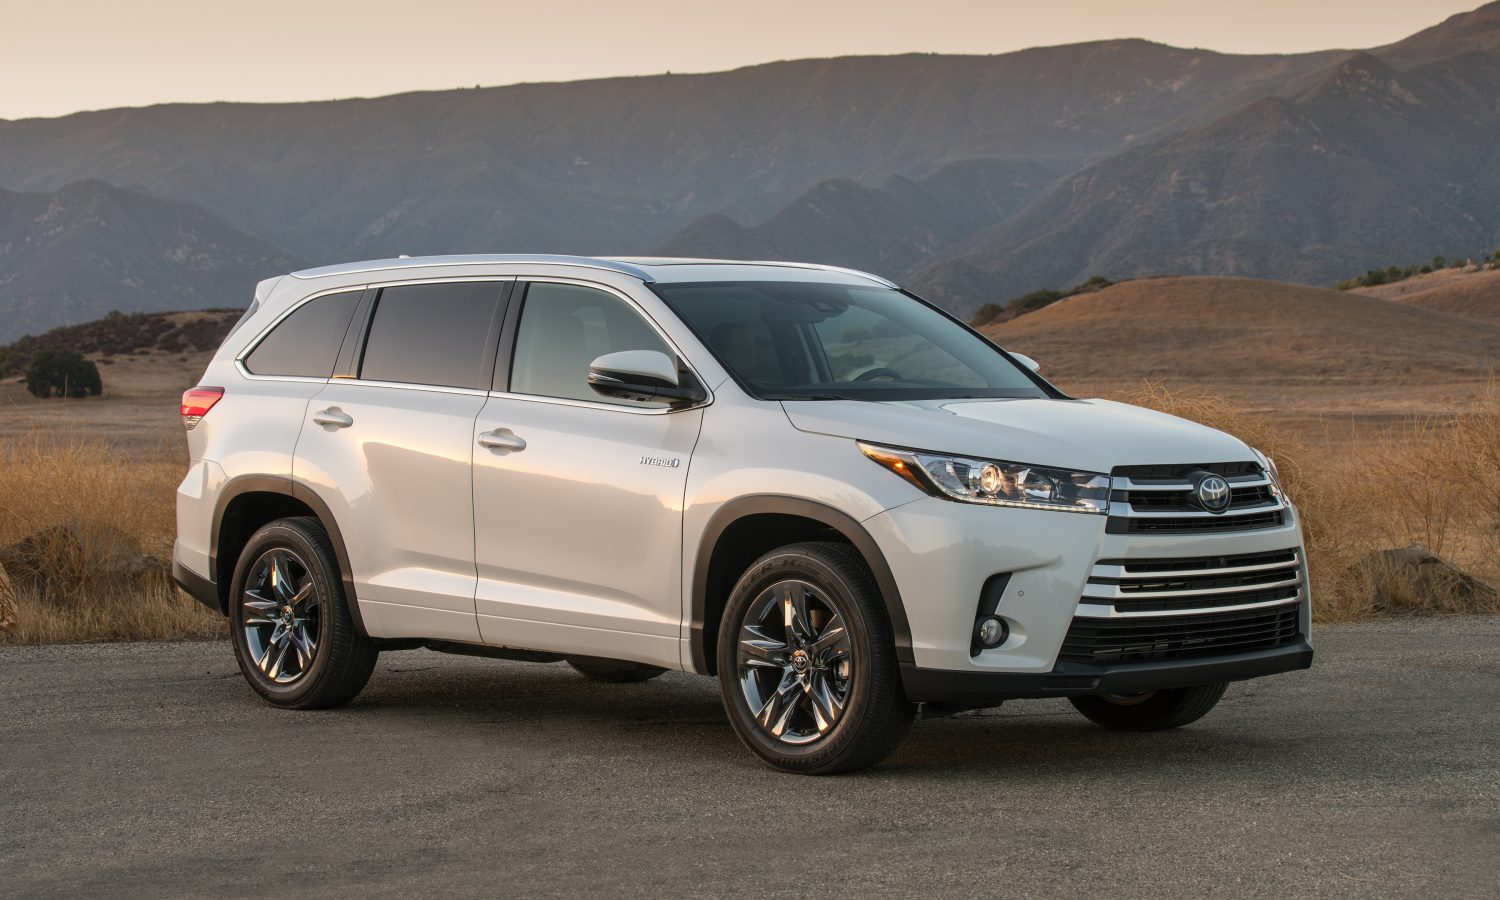 2018 Toyota Highlander Delivers on Value, Safety Features and Performance  for Families of All Sizes